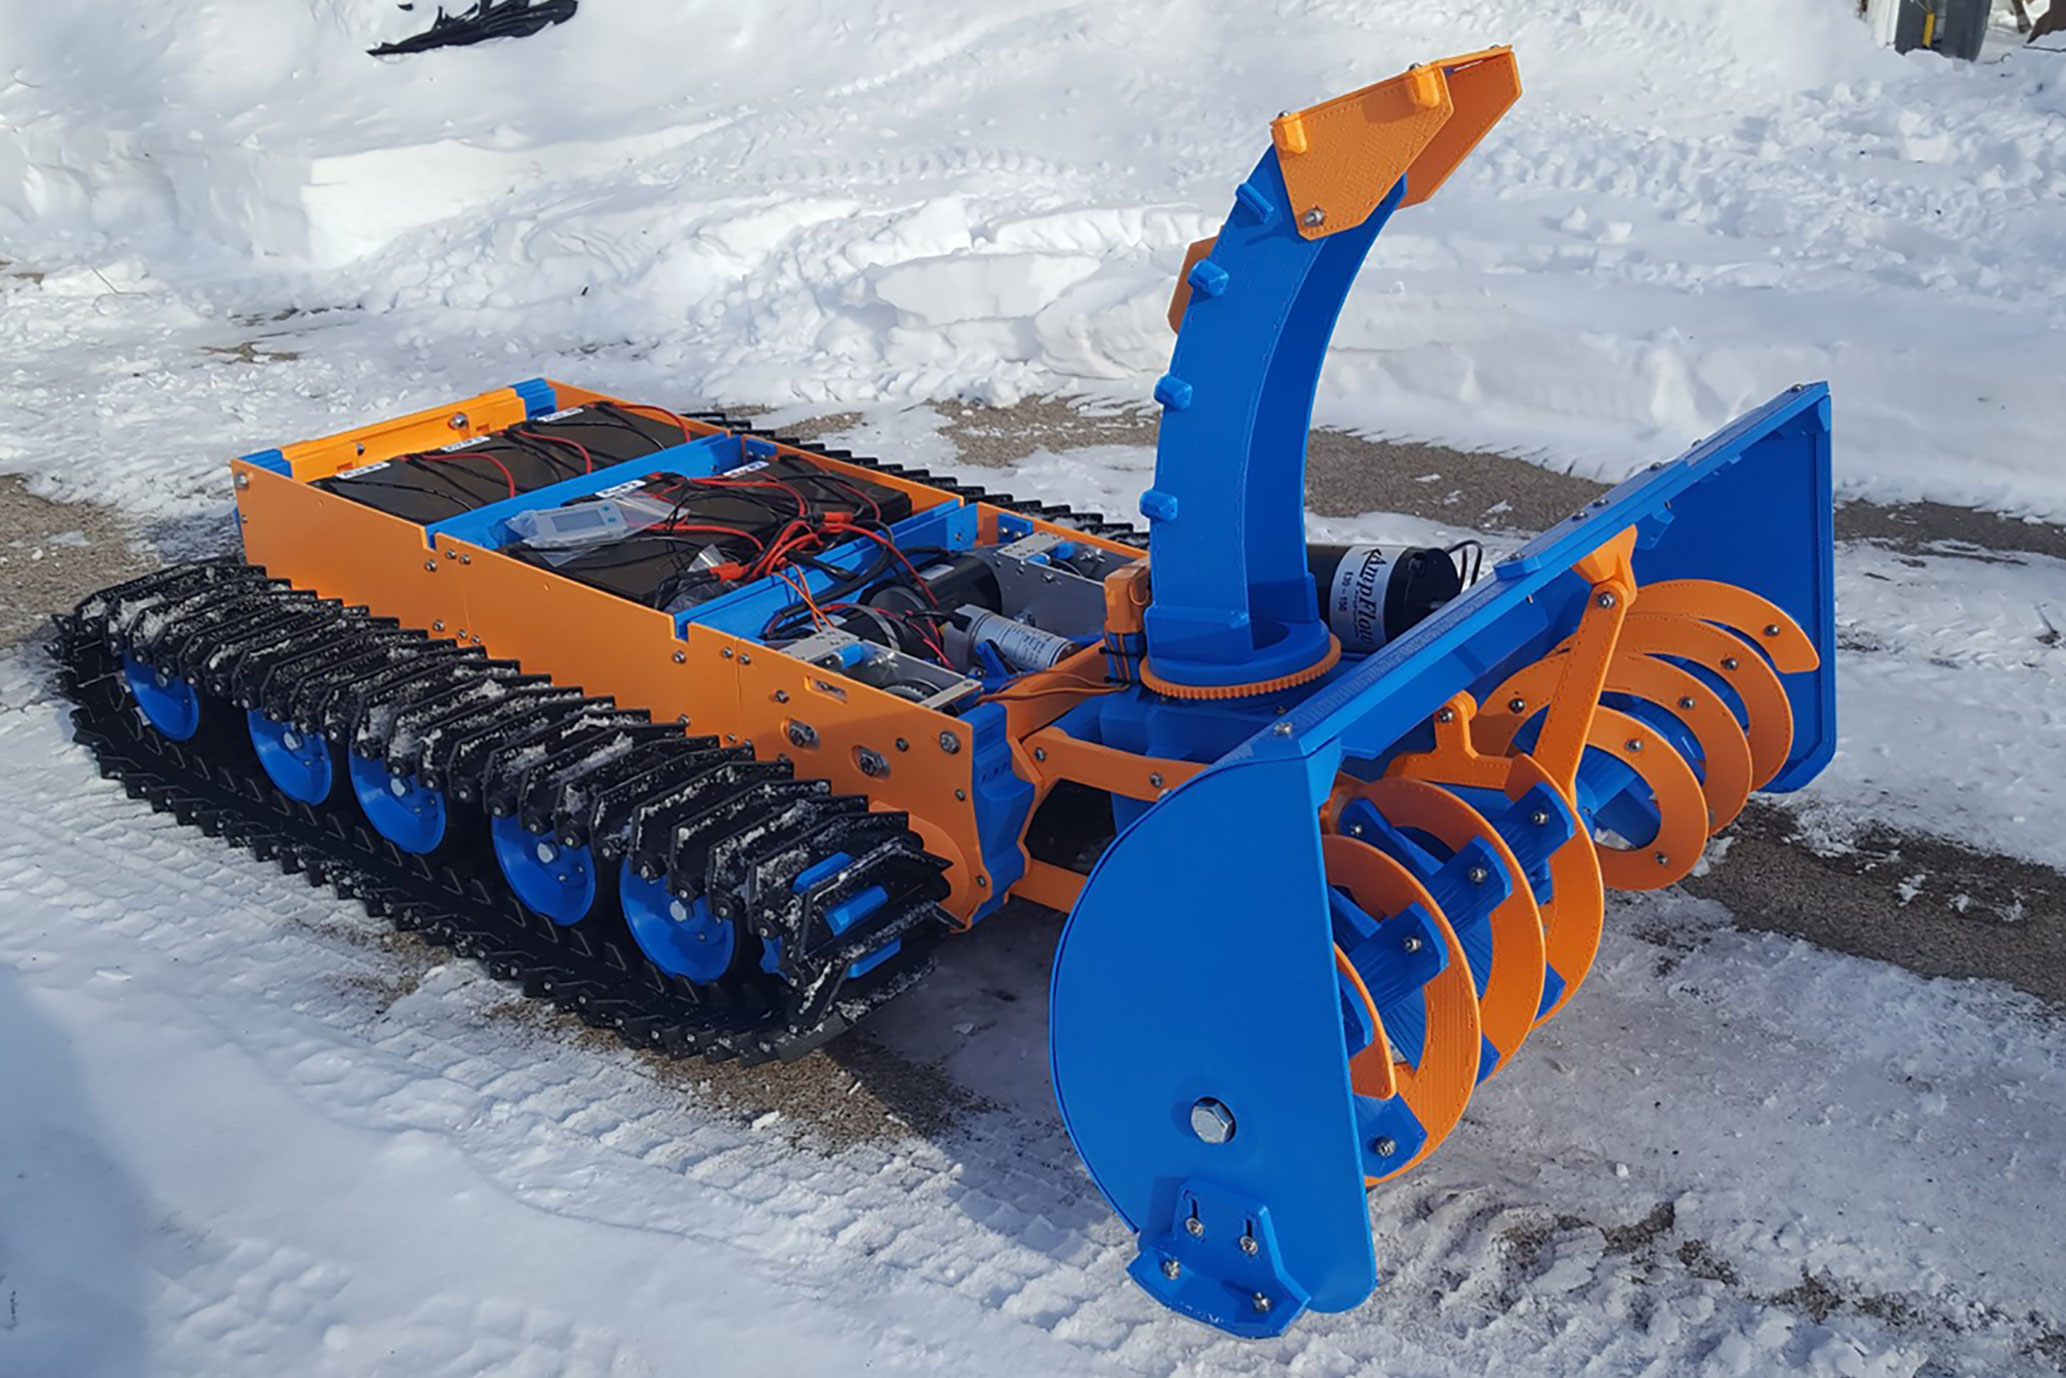 2XSpyker Kat remote-controlled snowblower